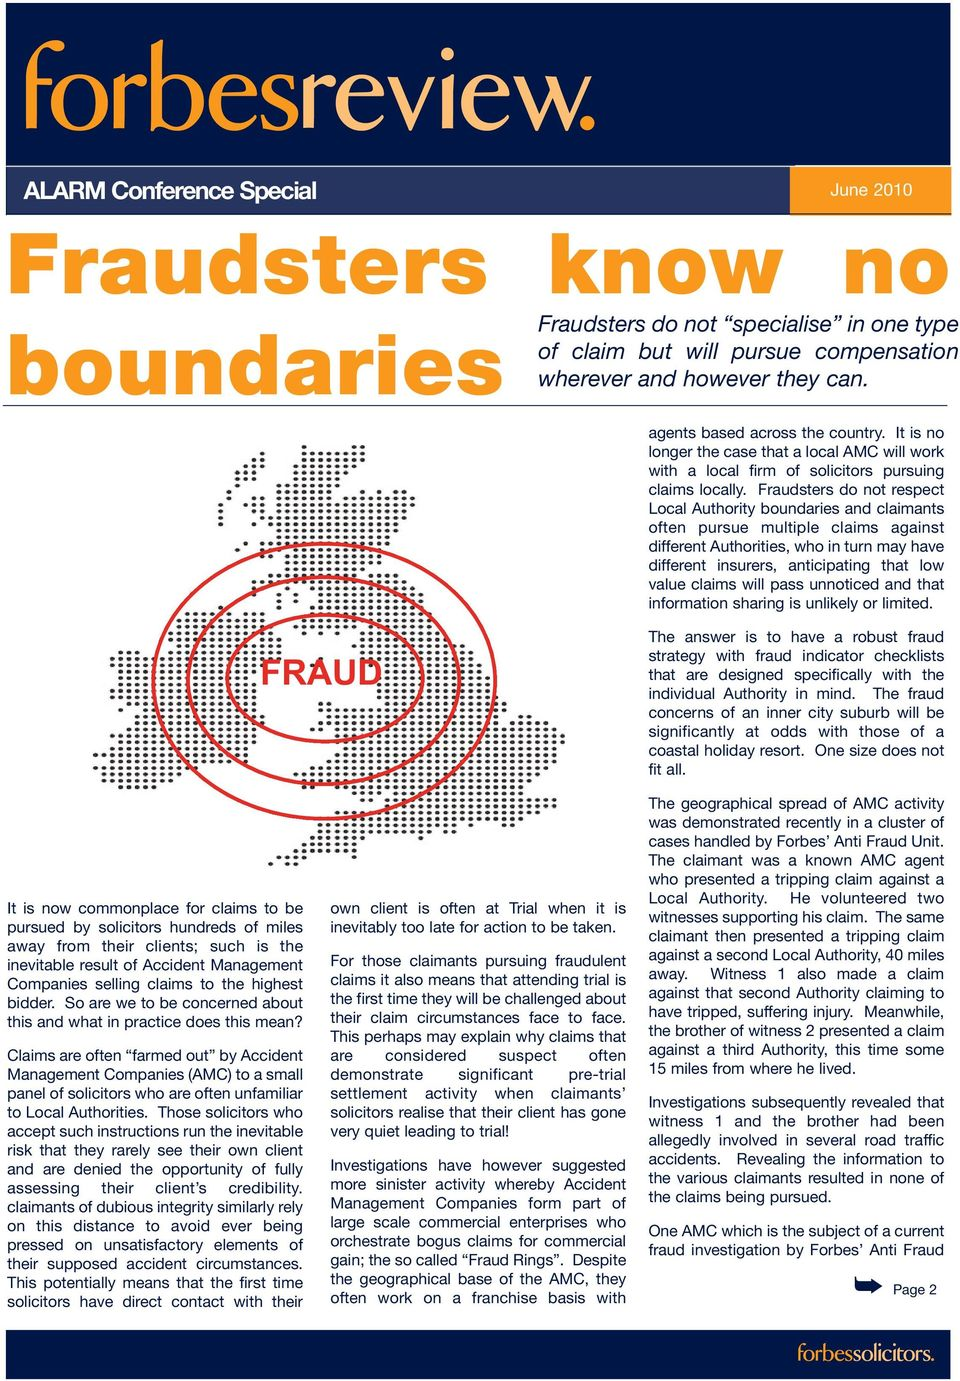 Fraudsters do not respect Local Authority boundaries and claimants often pursue multiple claims against different Authorities, who in turn may have different insurers, anticipating that low value